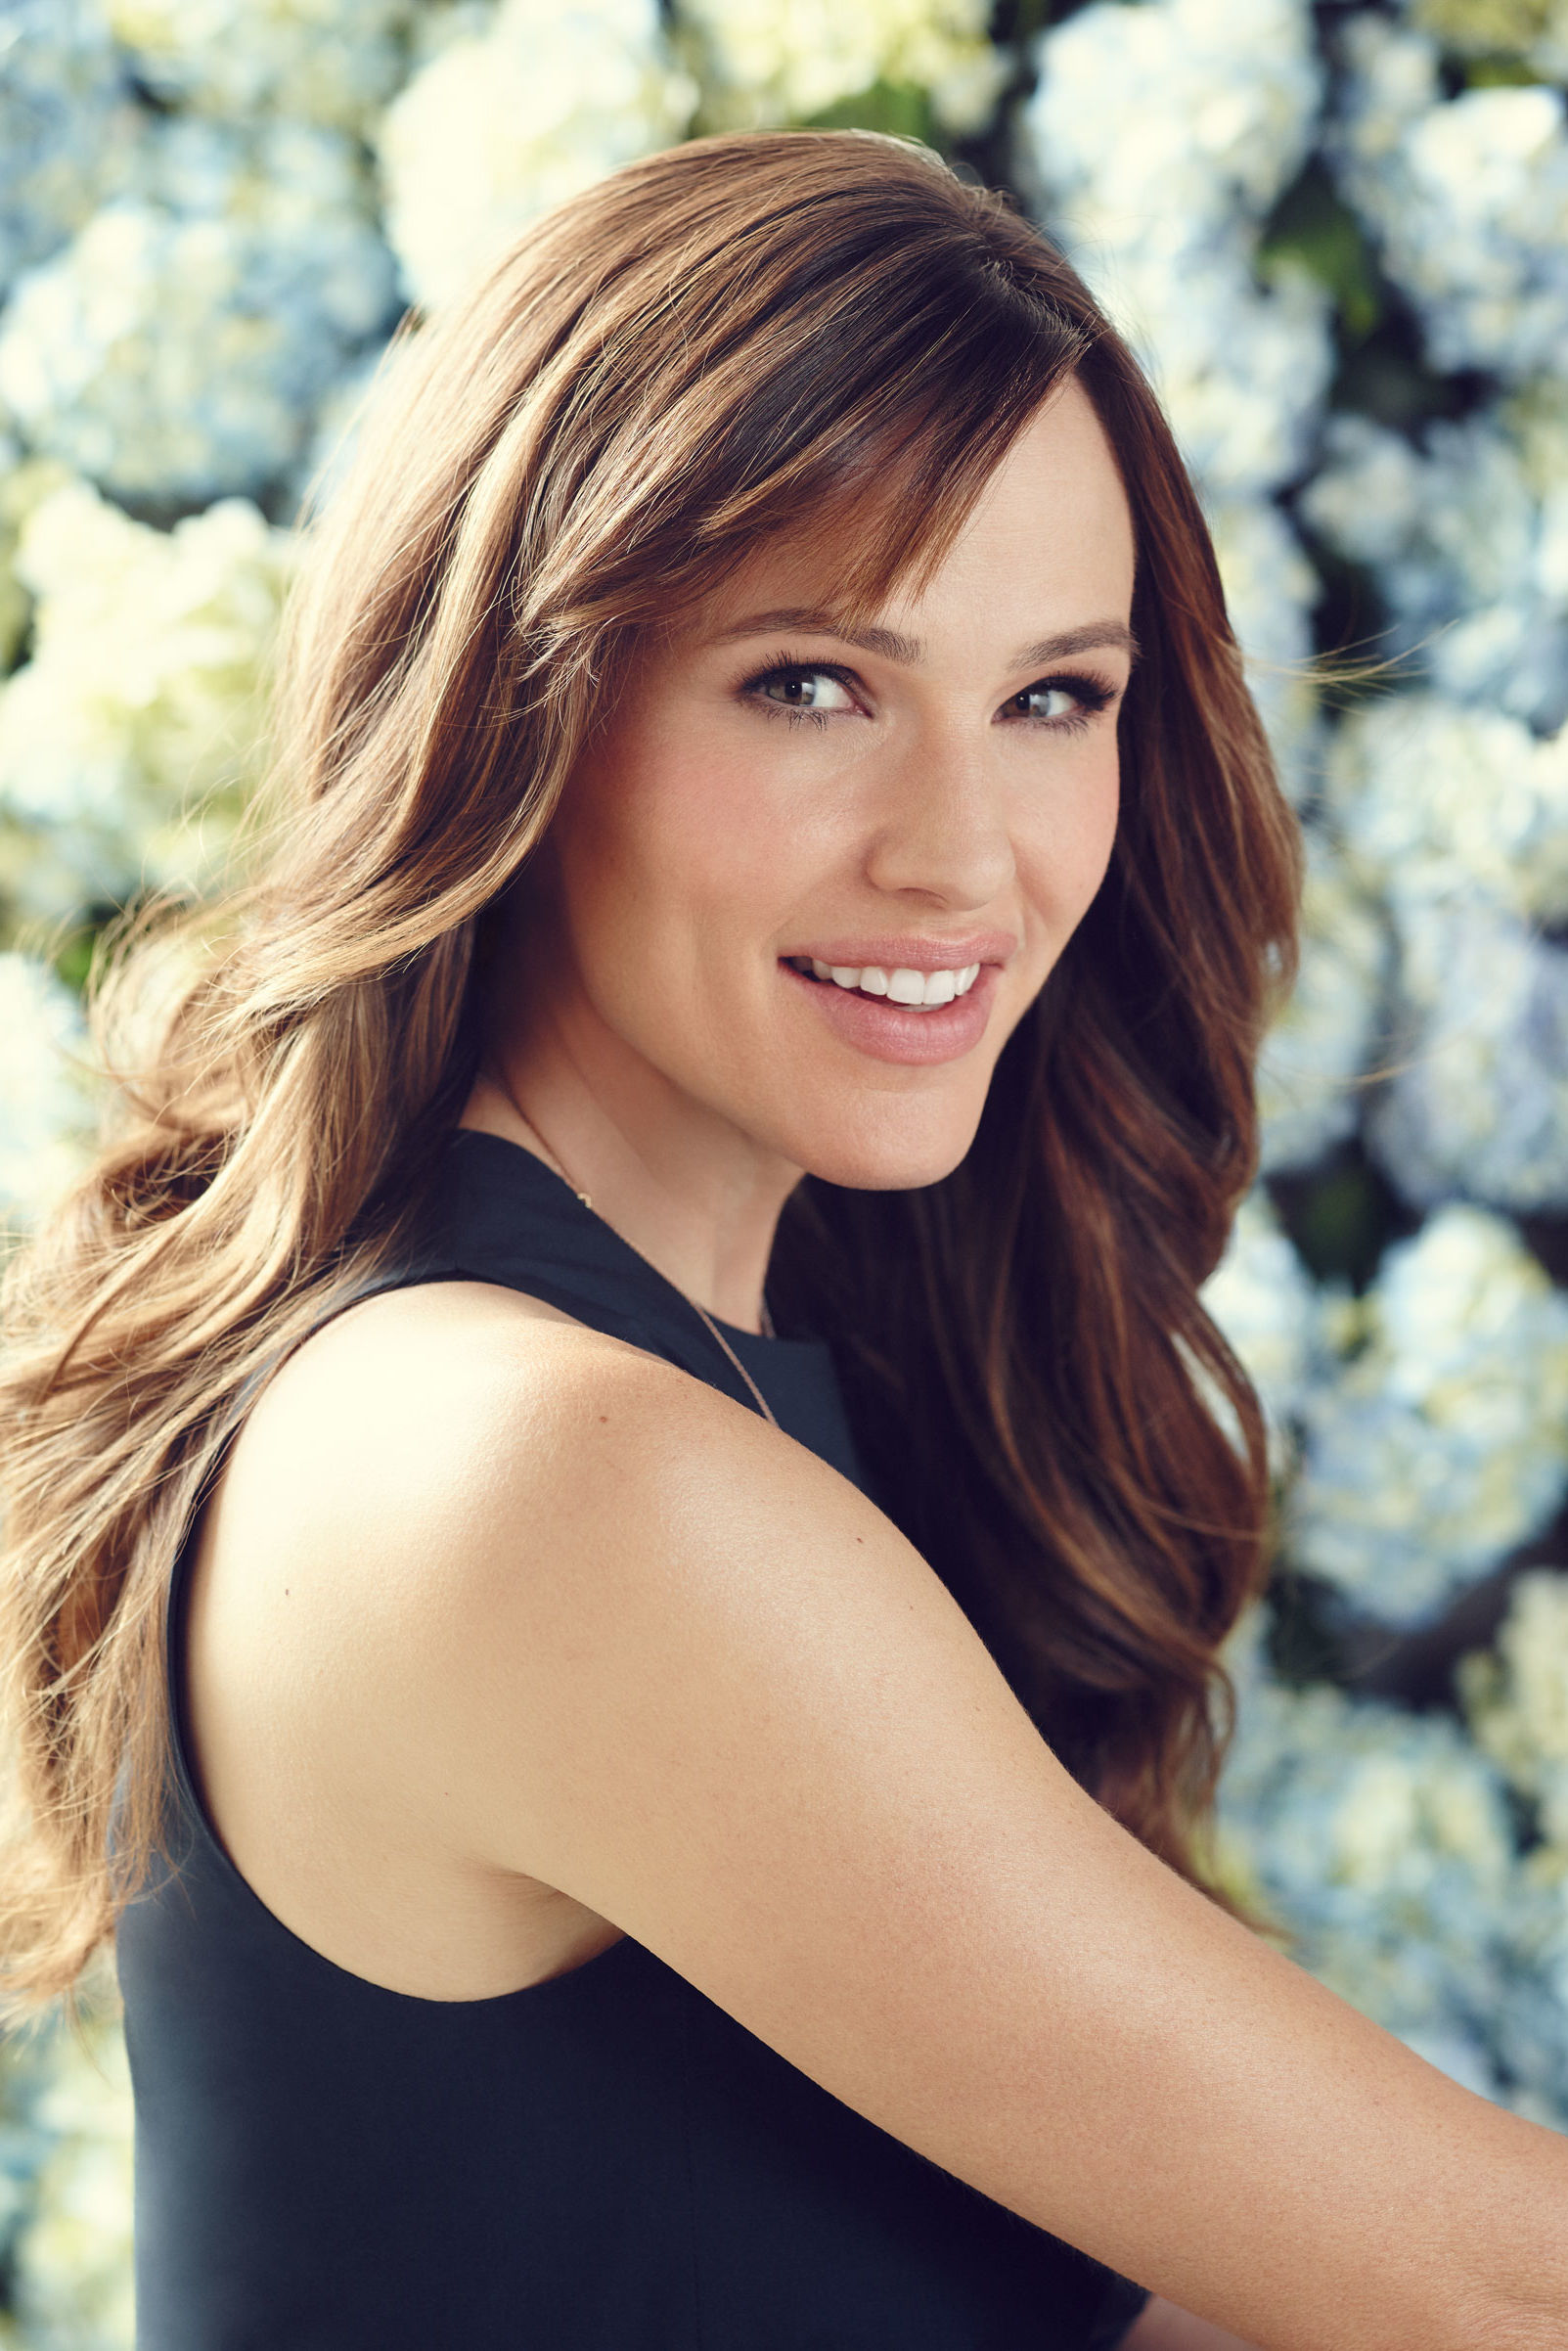 Jennifer Garner Shares the Healthy Smoothie She Makes 'Every Day for Breakfast'